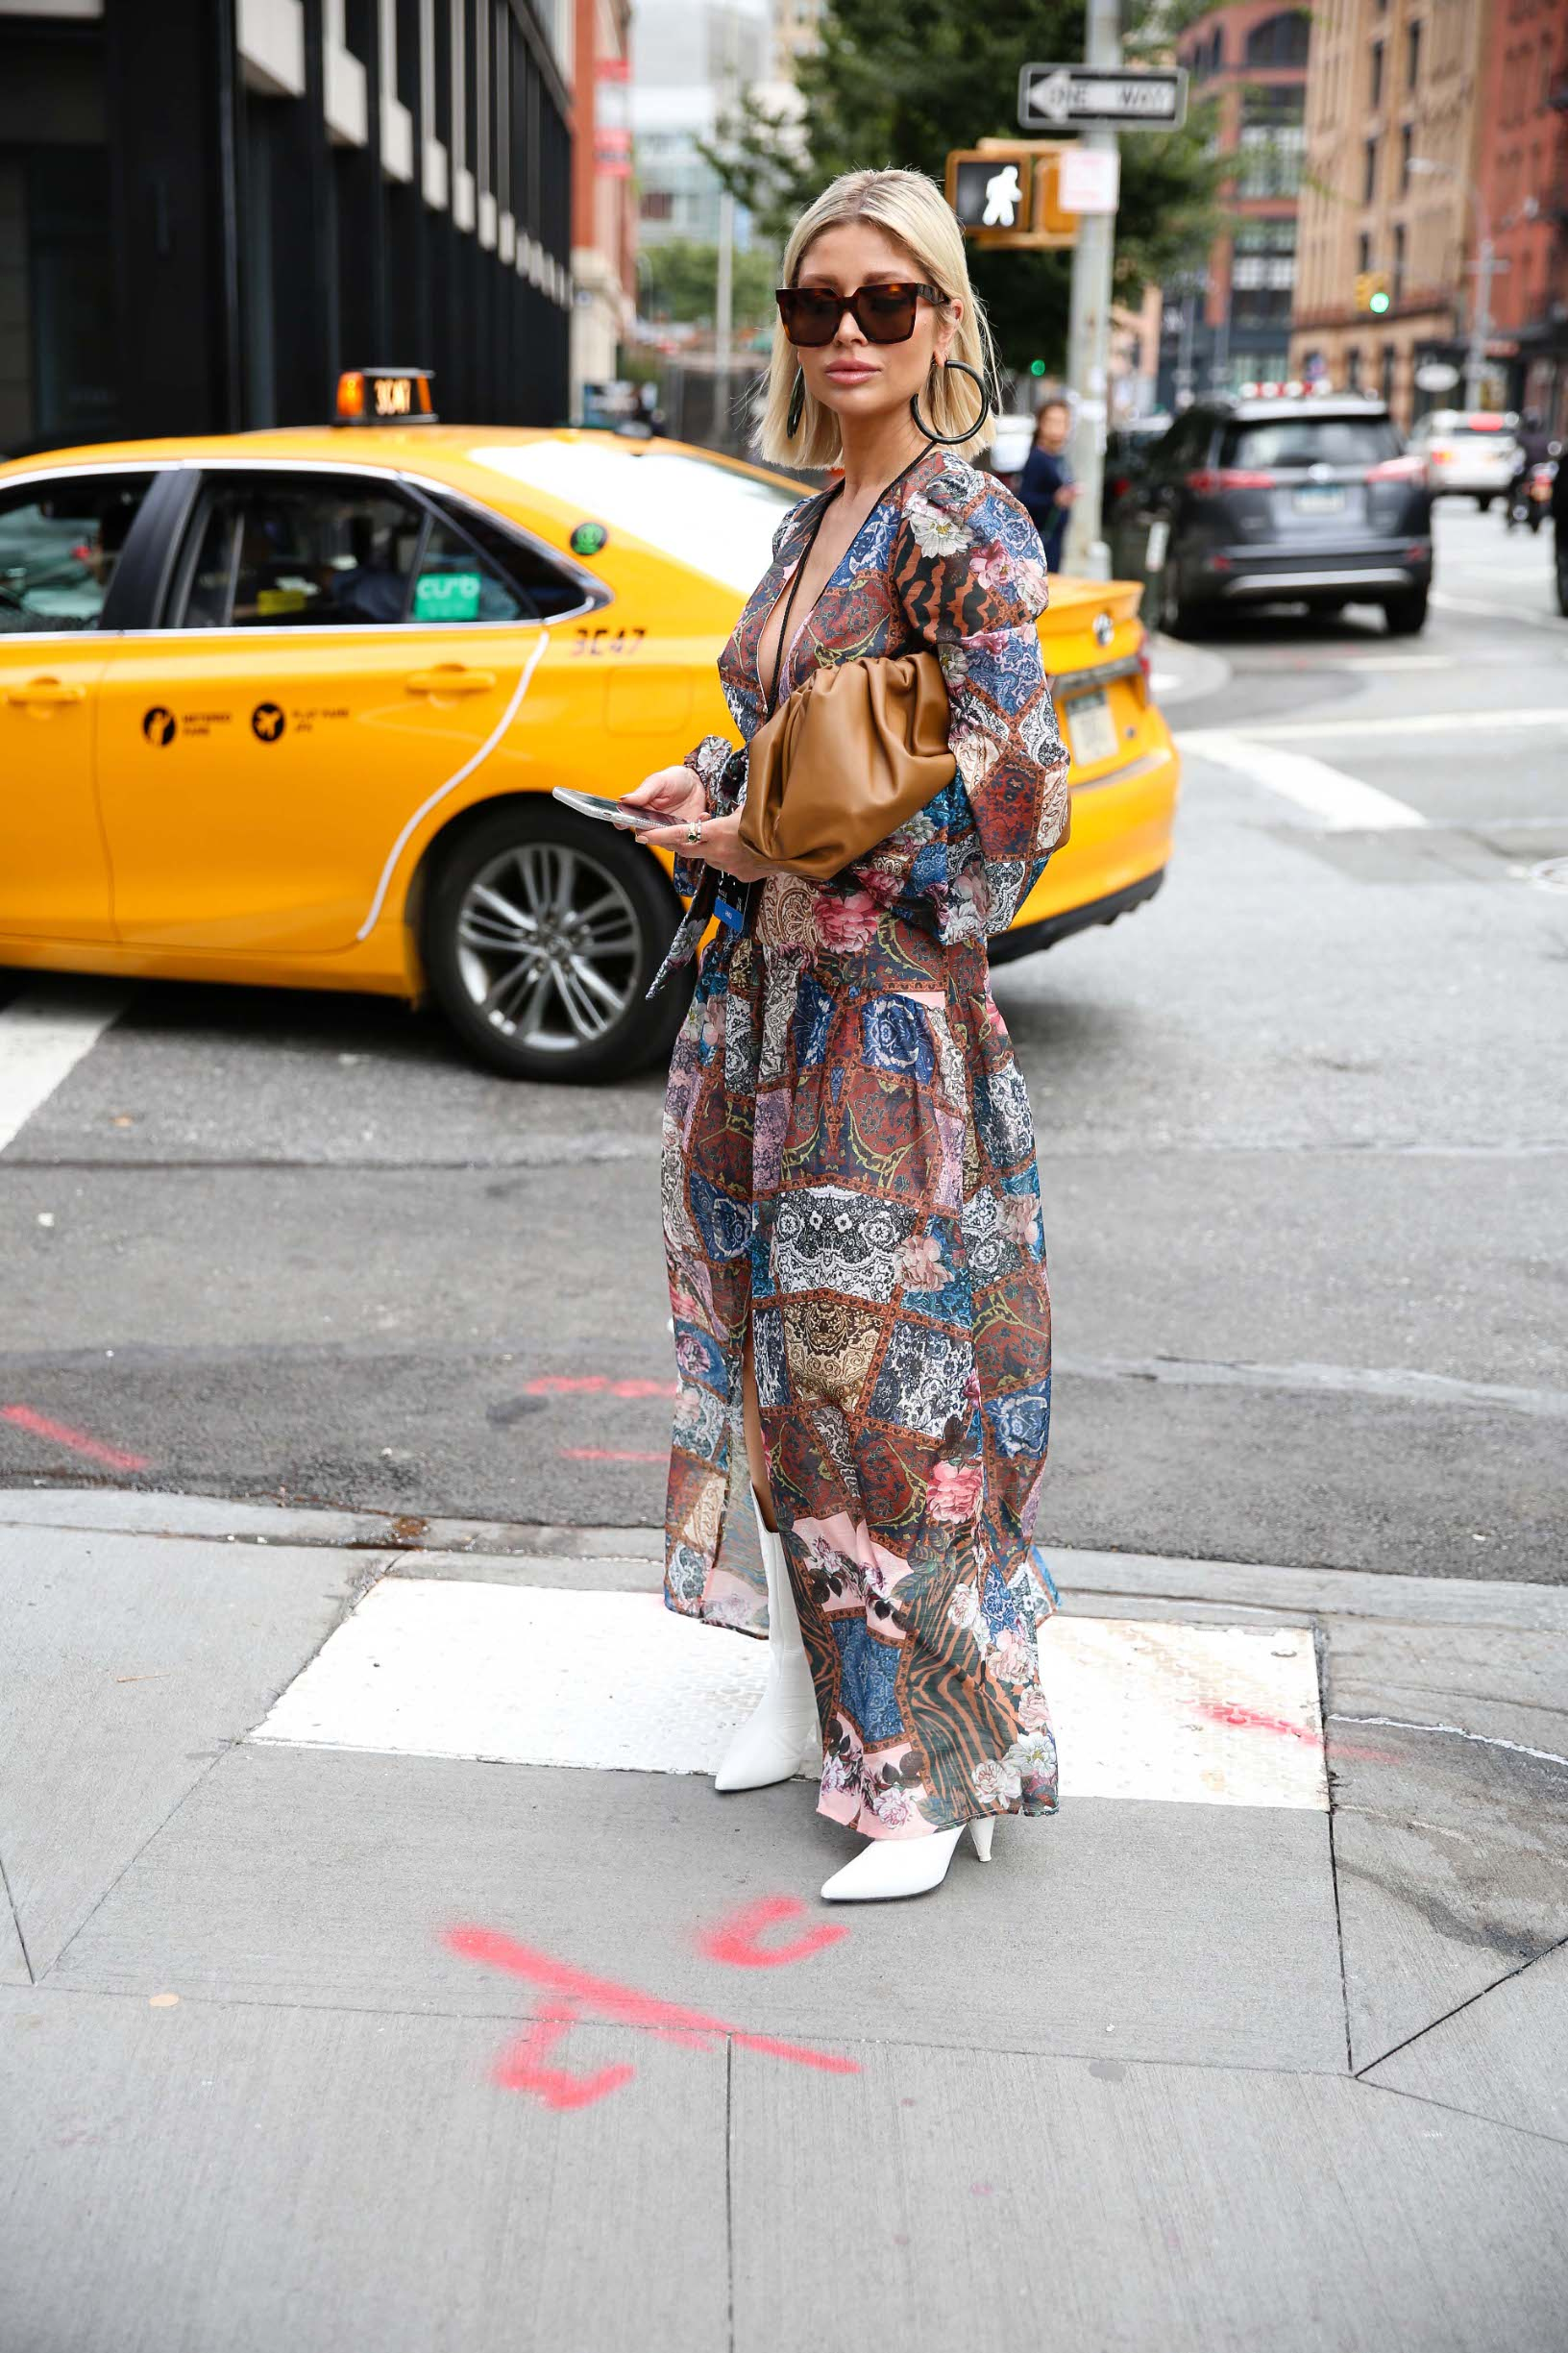 NEW YORK, NEW YORK - SEPTEMBER 08: A guest poses outside of Spring Studios during New York Fashion Week on September 08, 2019 in New York City. (Photo by Donell Woodson/Getty Images)